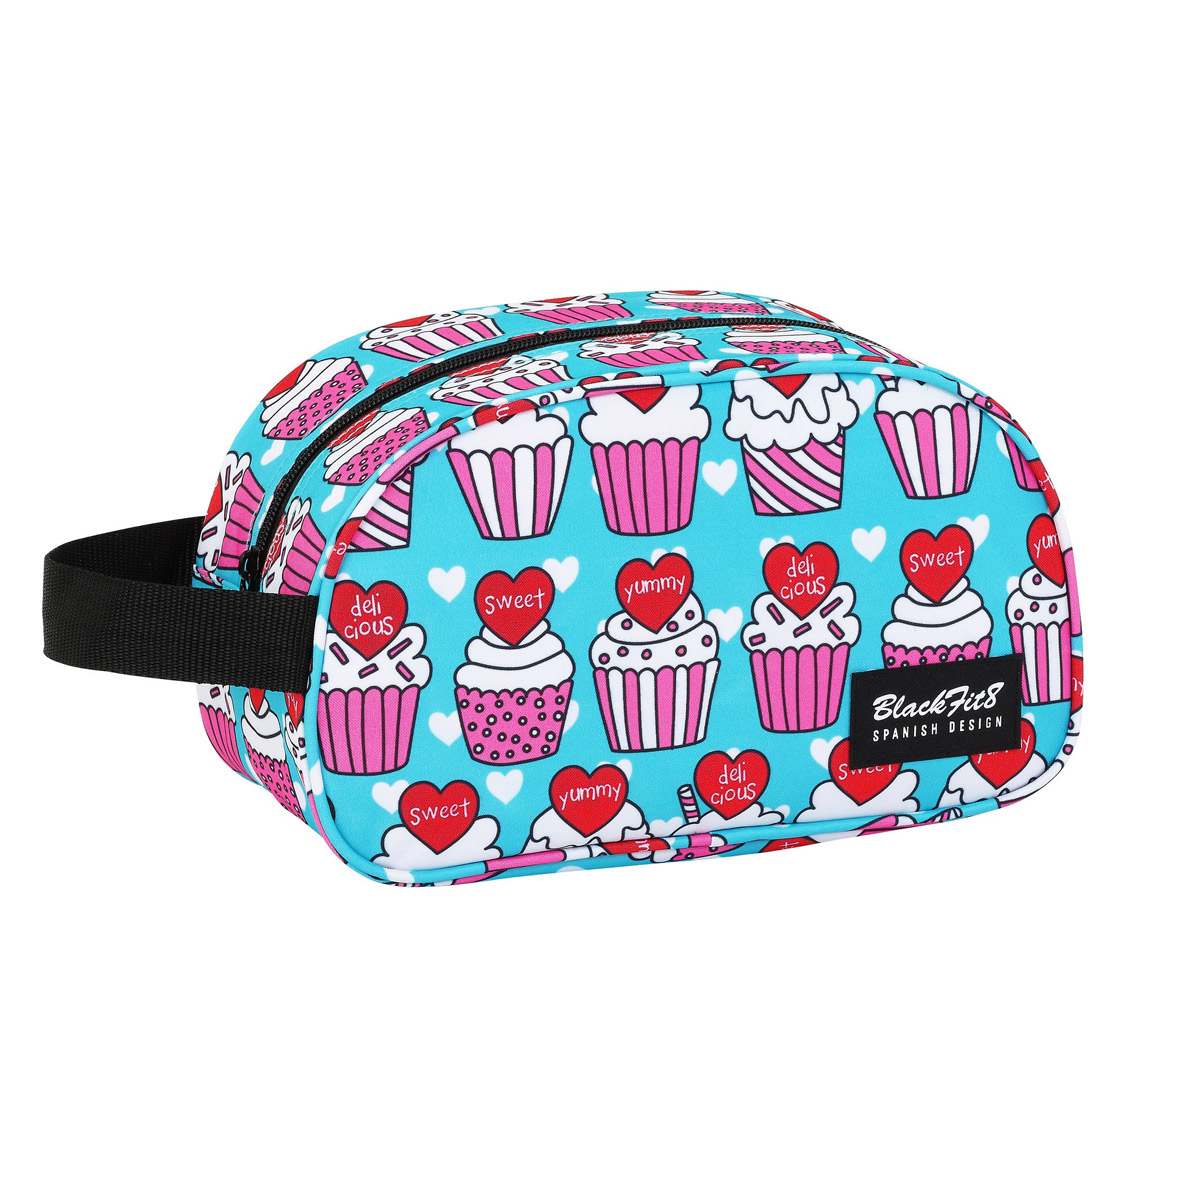 Blackfit8 Yummy Cupcake Wash Travel Bag